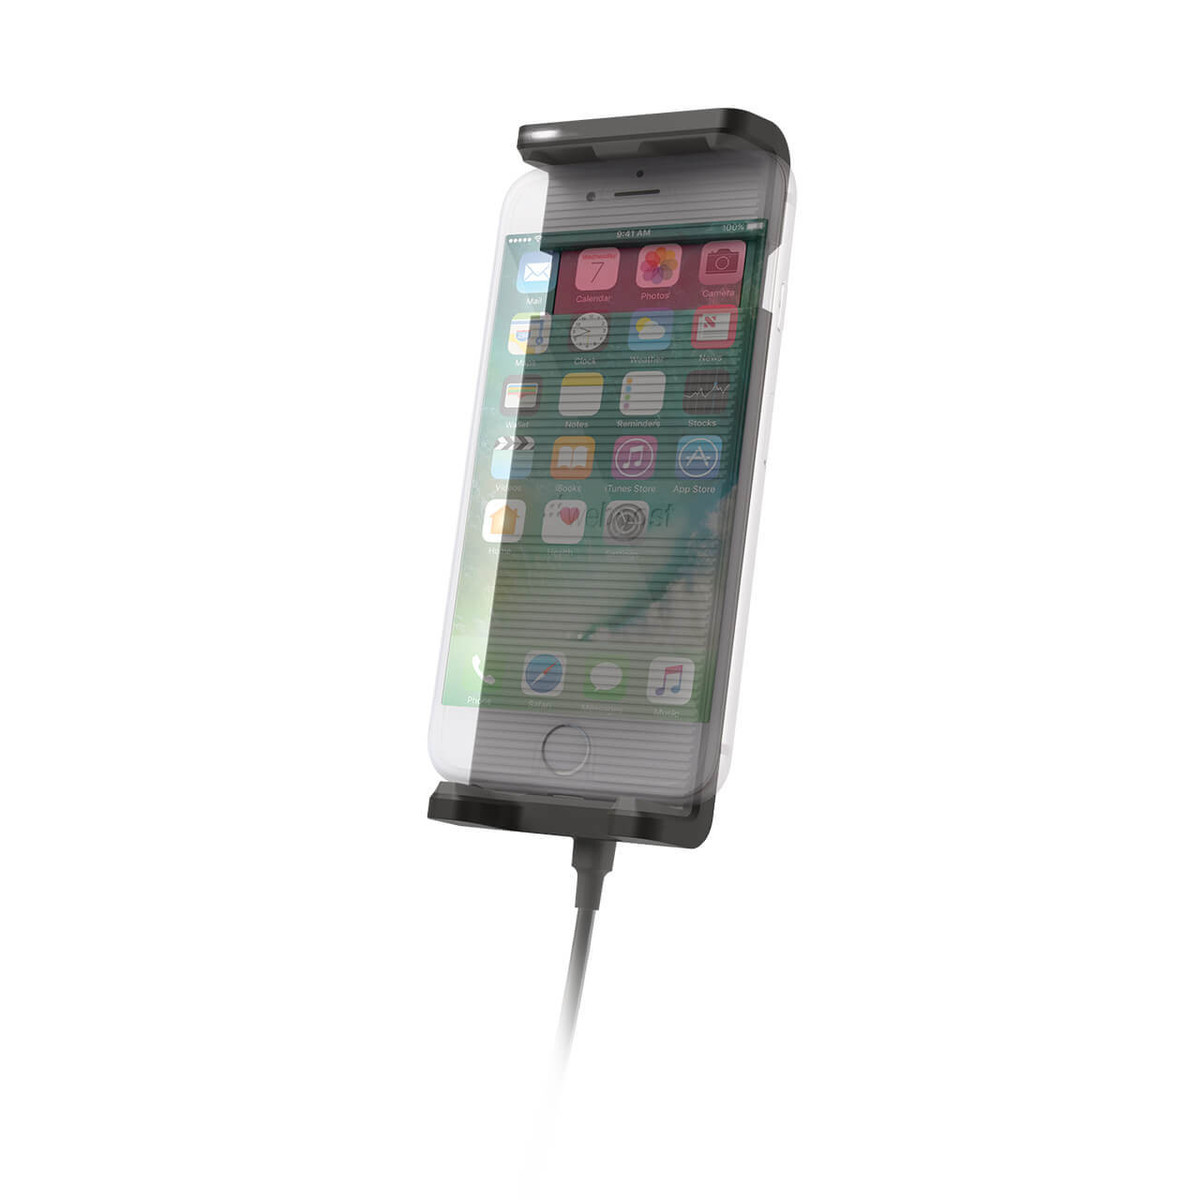 weBoost Drive Sleek OTR 4G Cell Phone Booster - cradle with phone